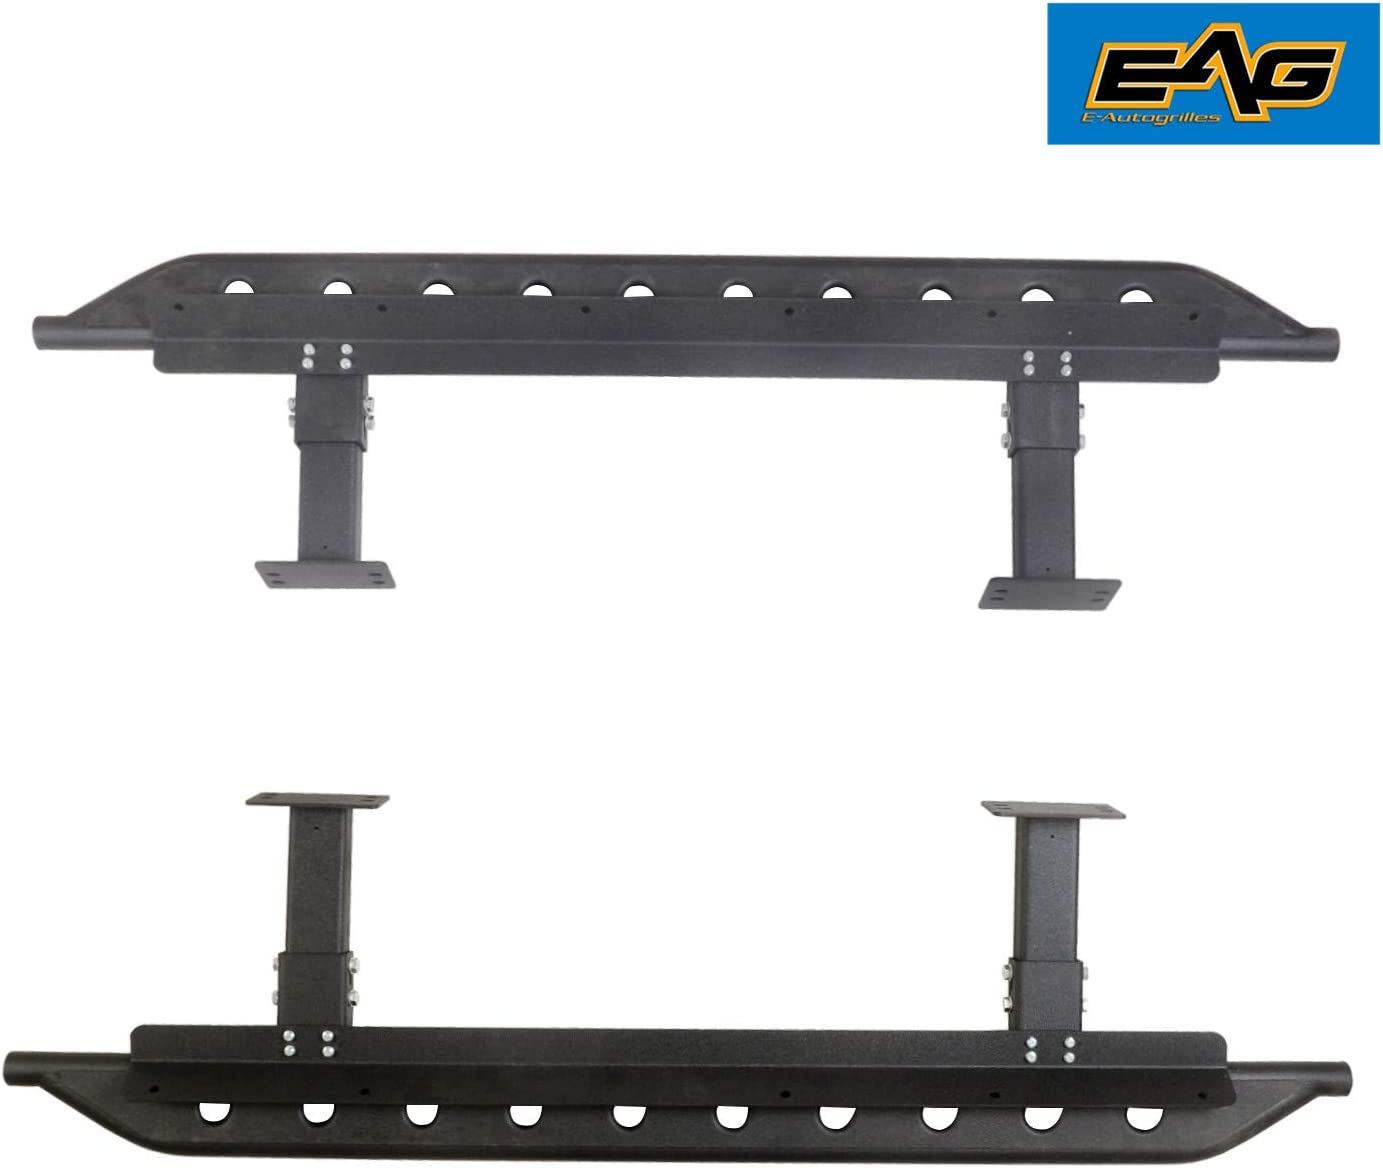 EAG Steel Rock Sliders Side Steps Running Boards Fit for 84-01 Jeep Cherokee XJ